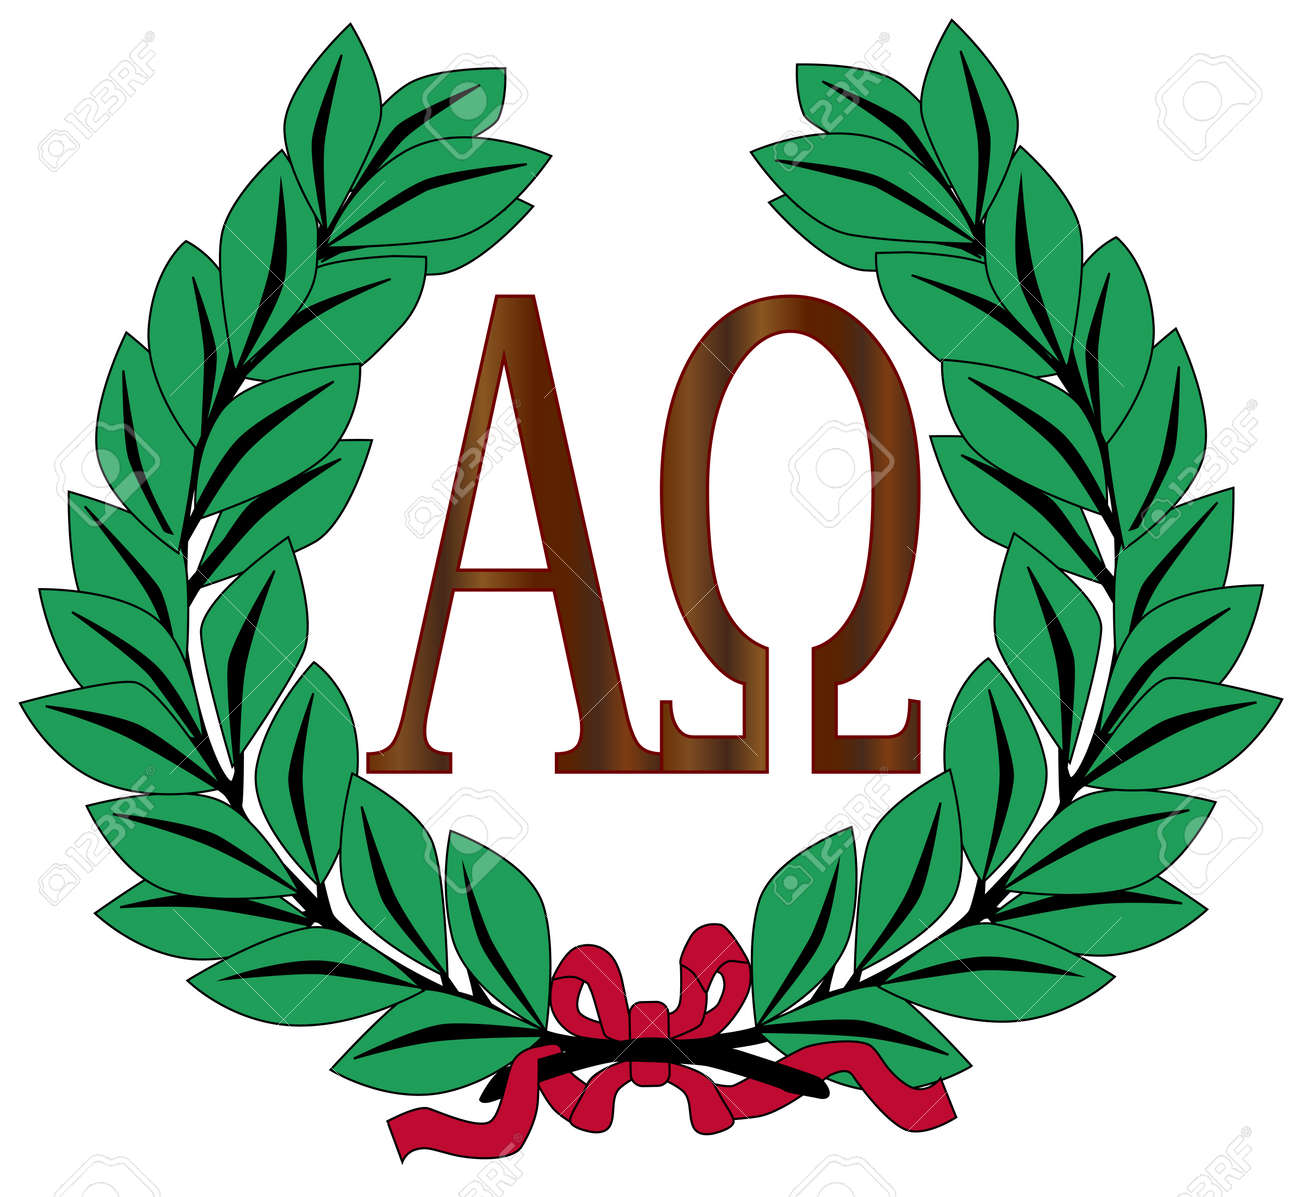 The Alpha Omega Symbols Over A White Background Within A Wreath